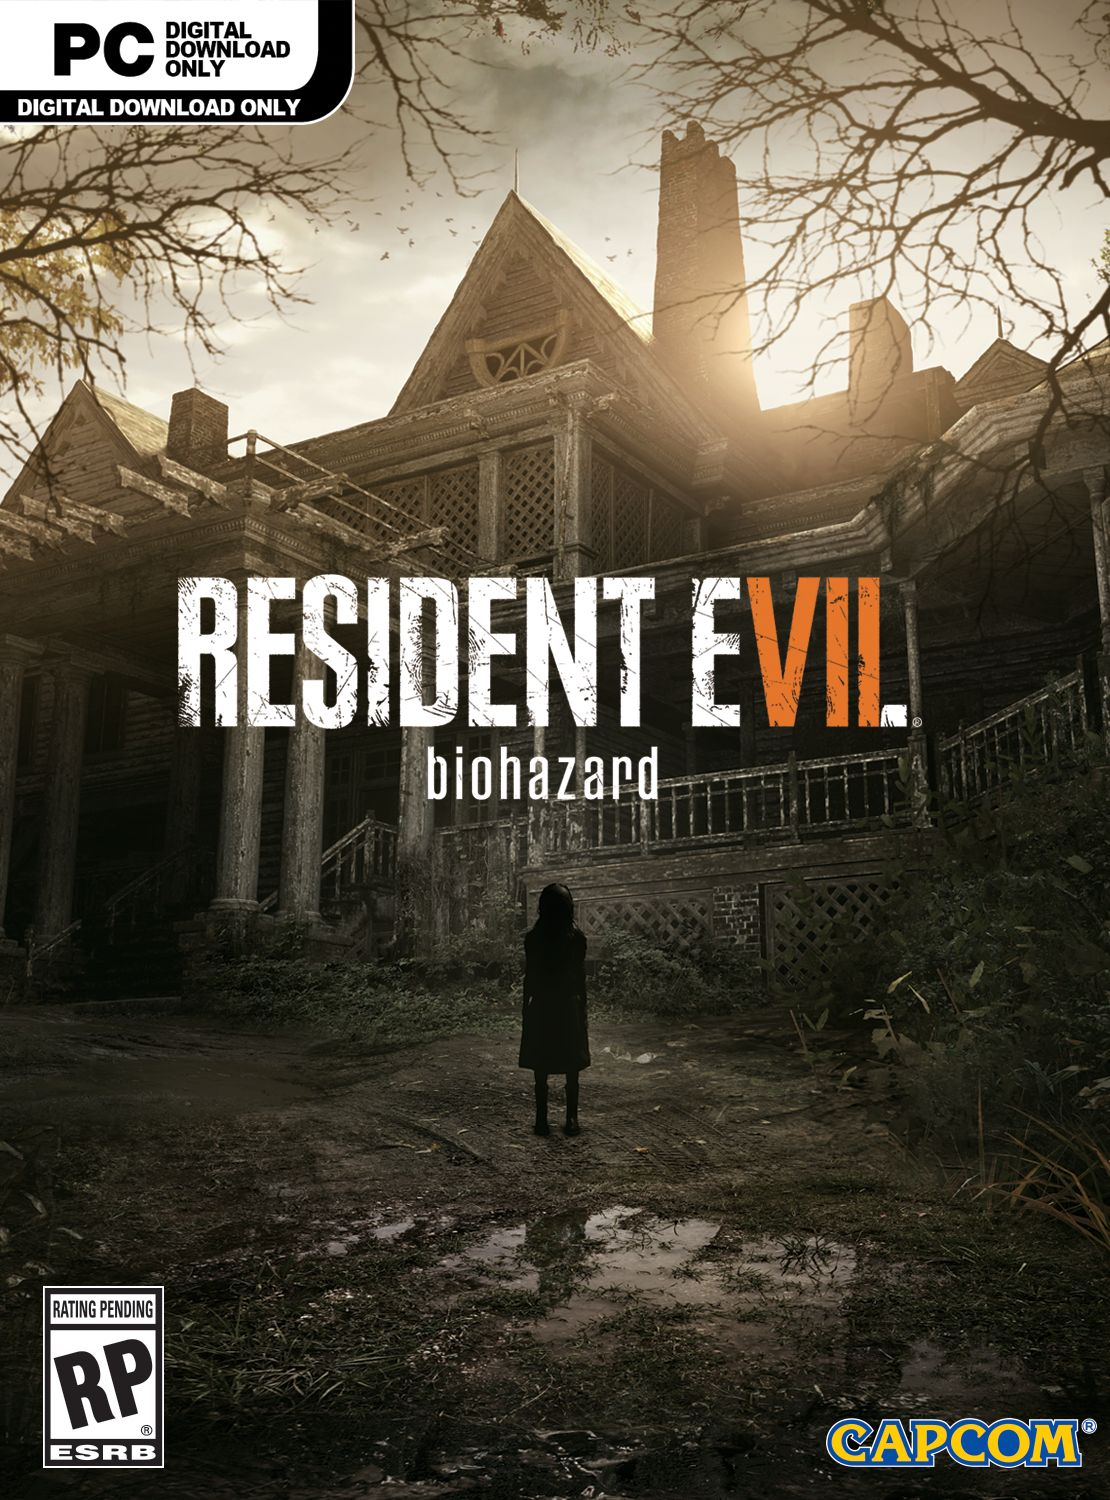 http://img5.downloadha.com/hosein/Game/December%202016/19/Resident-Evil-7-Biohazard-7-pc-cover-large.jpg